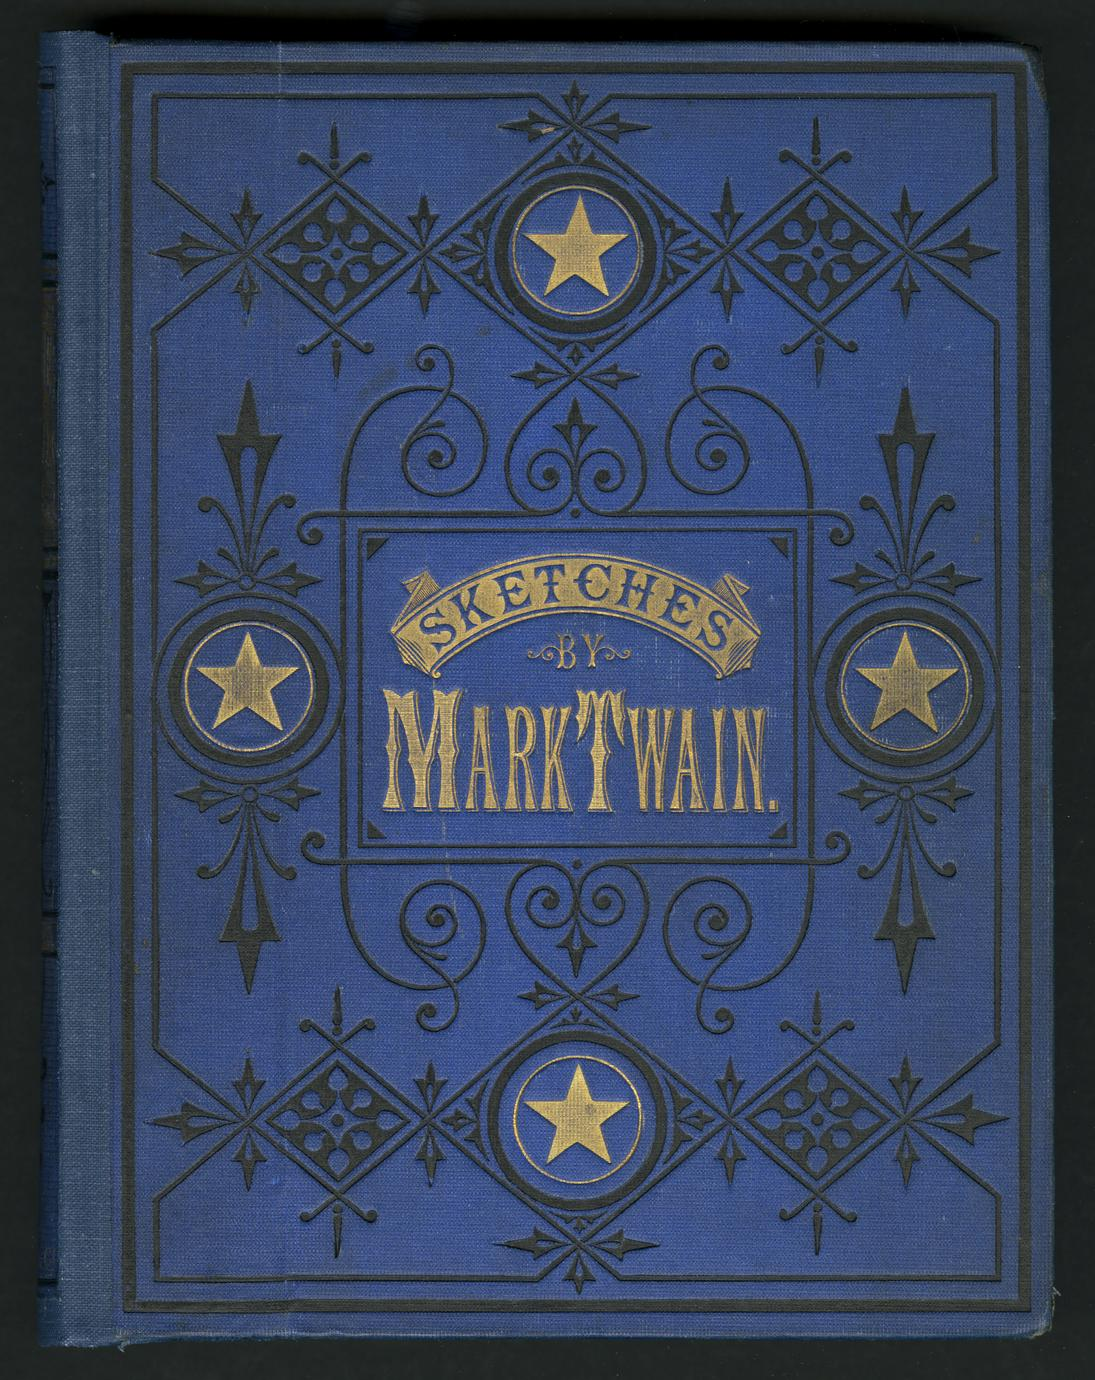 Mark Twain's sketches new and old (1 of 3)